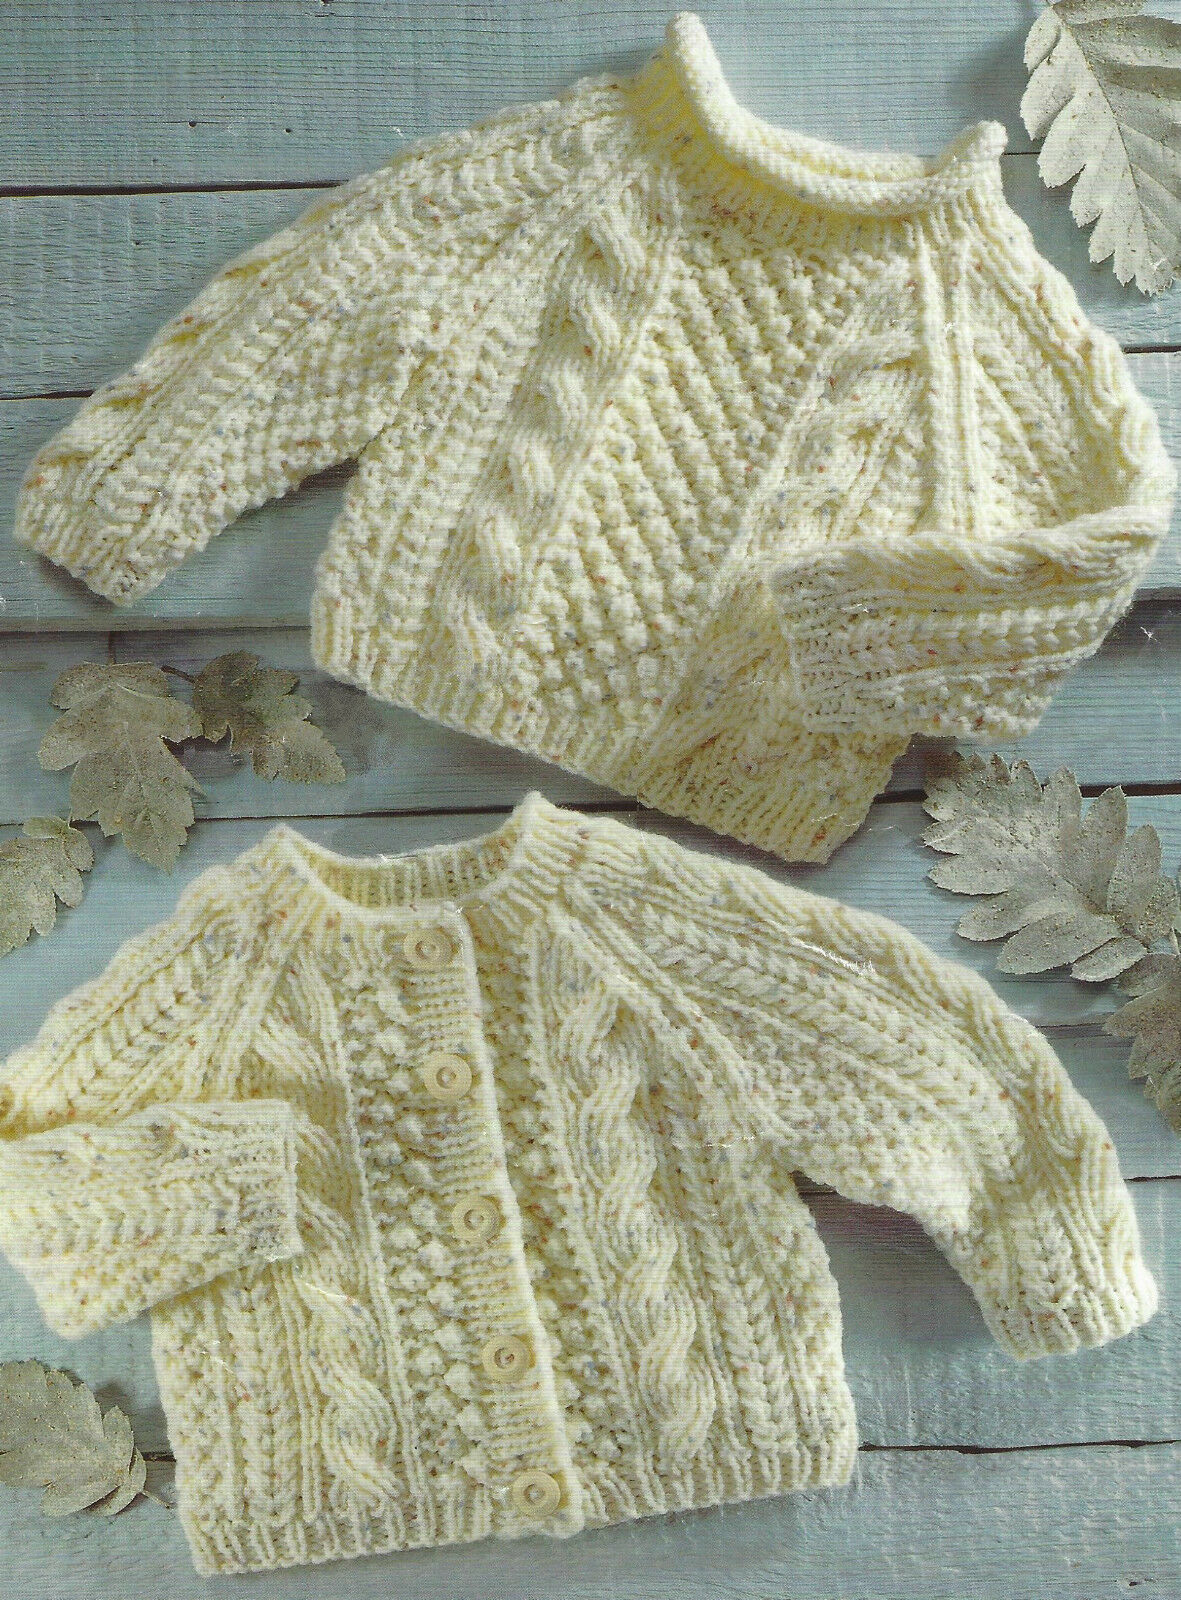 Free Aran Knitting Pattern : Aran Knitting Pattern Cardigan Sweater with cables Baby Girls Boys 16-26